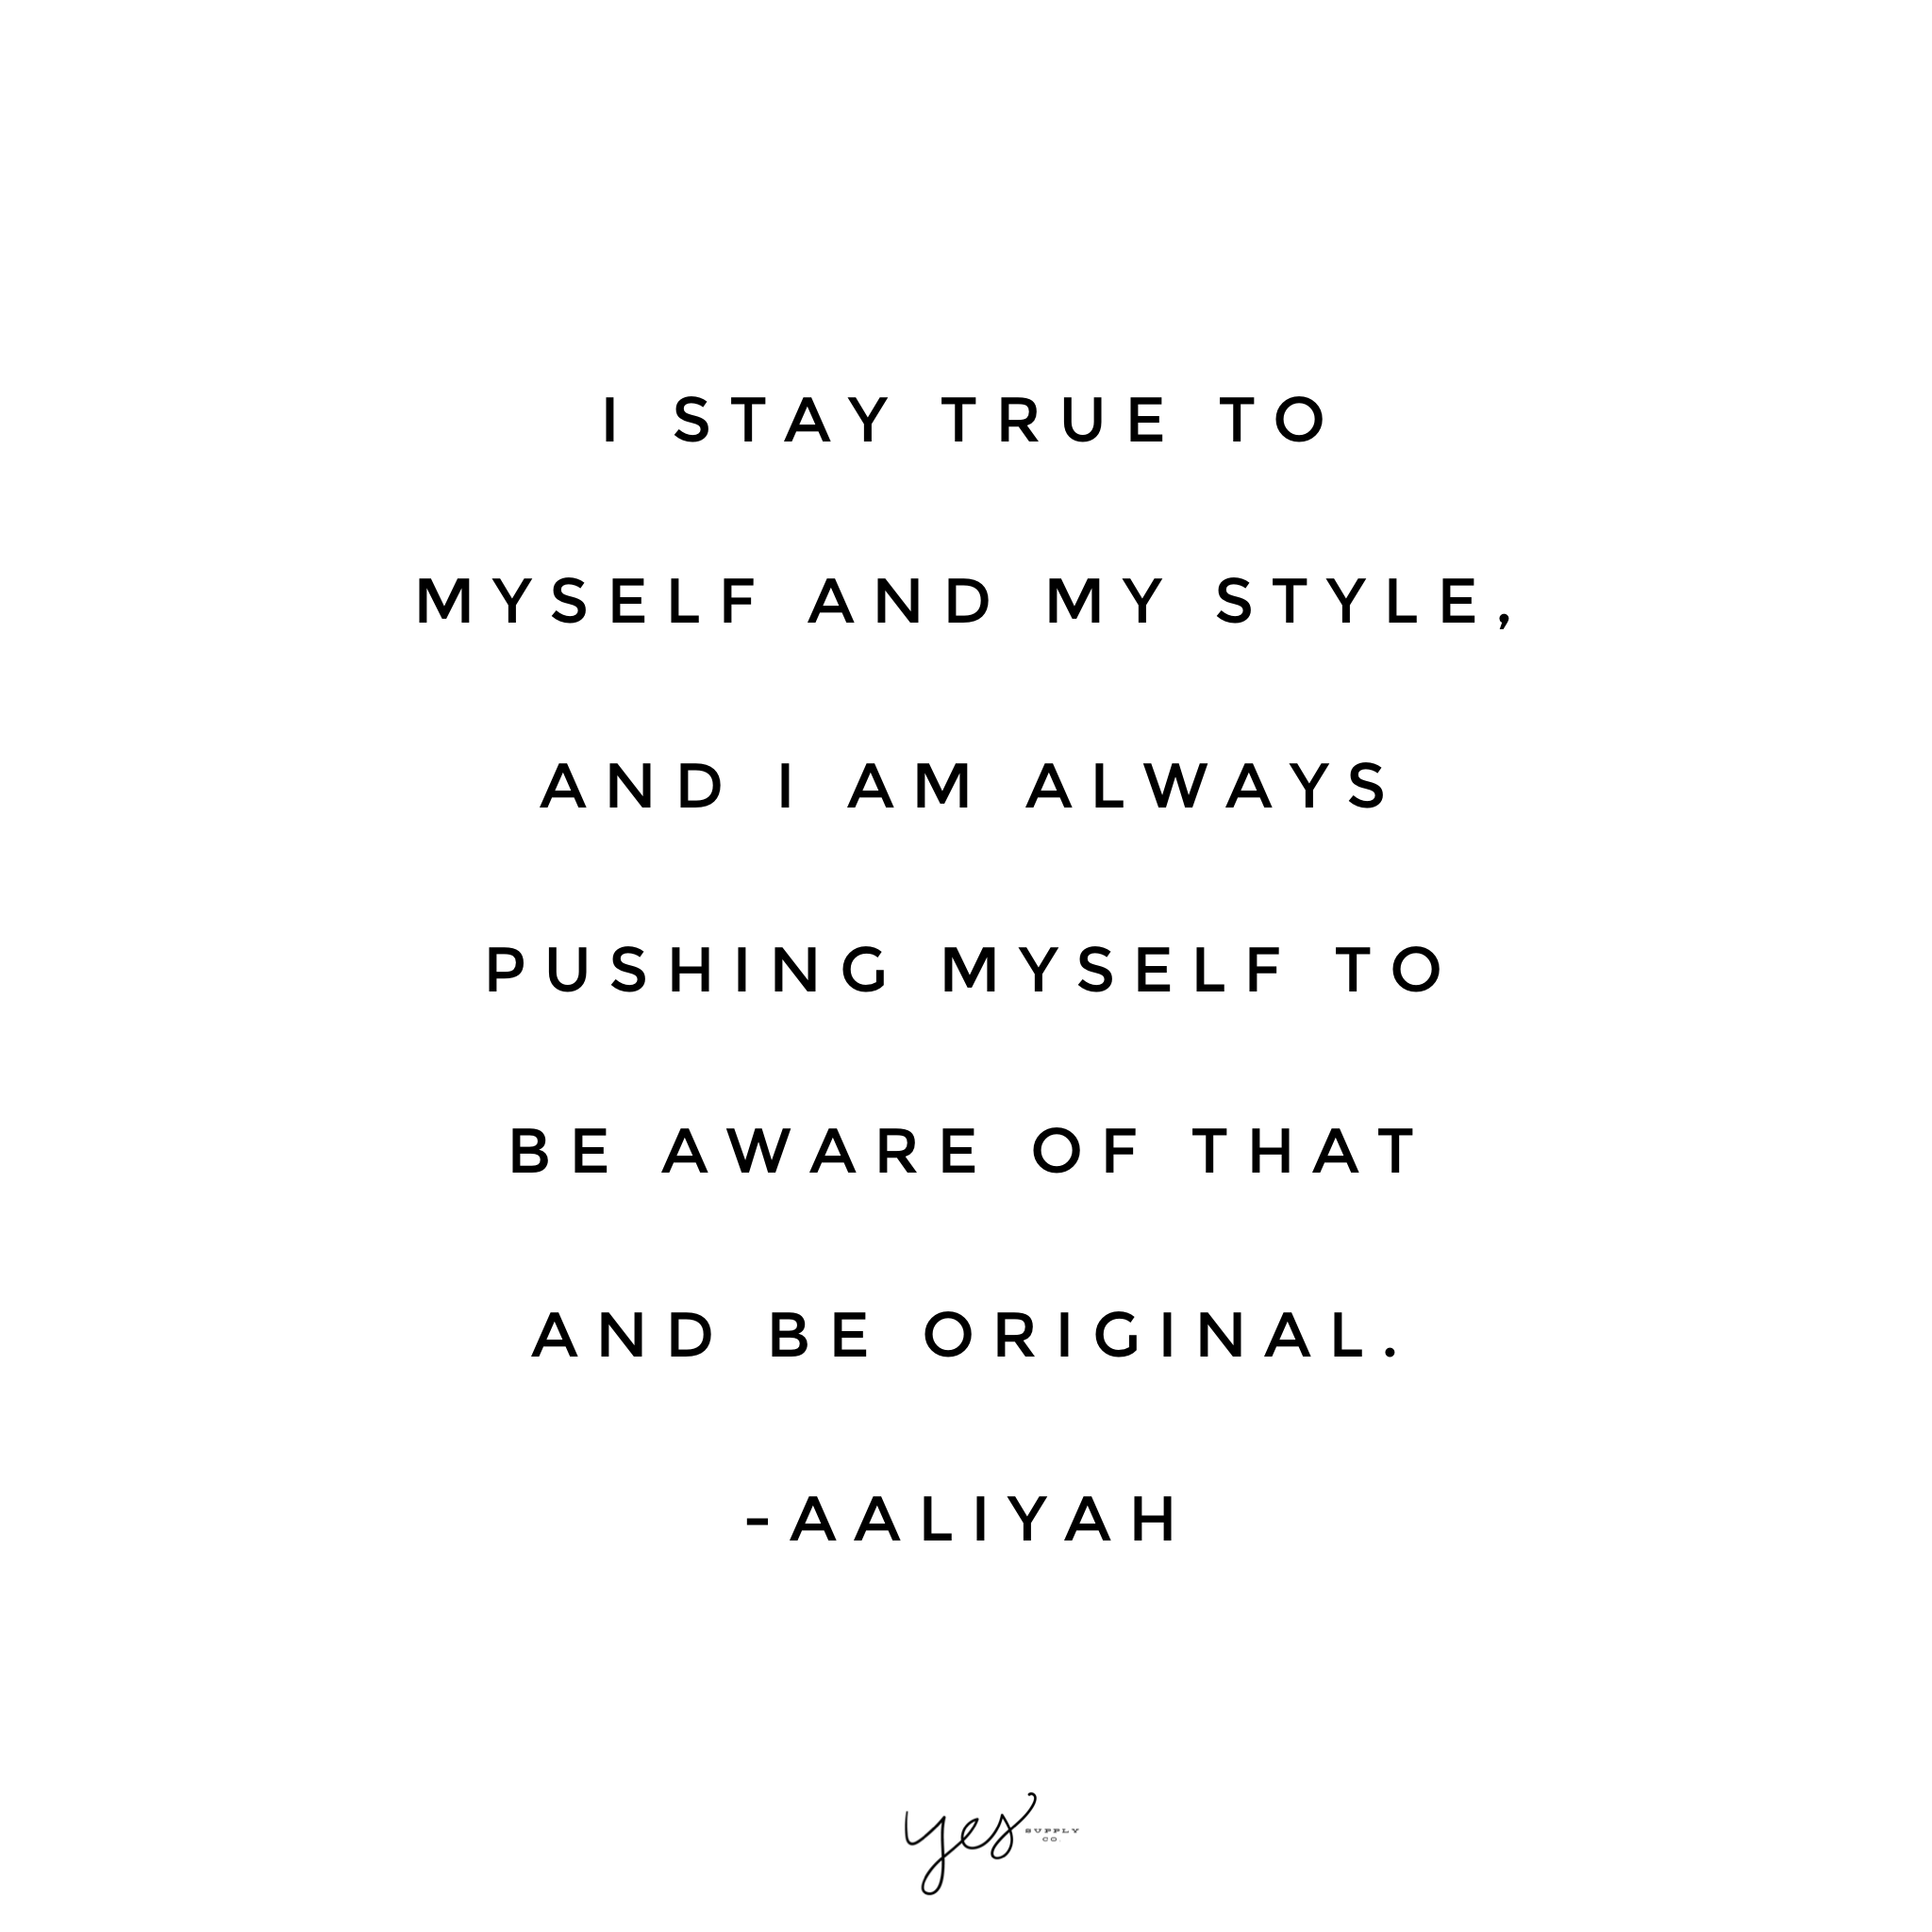 I Stay True To Myself And My Style And I Am Always Pushing Myself To